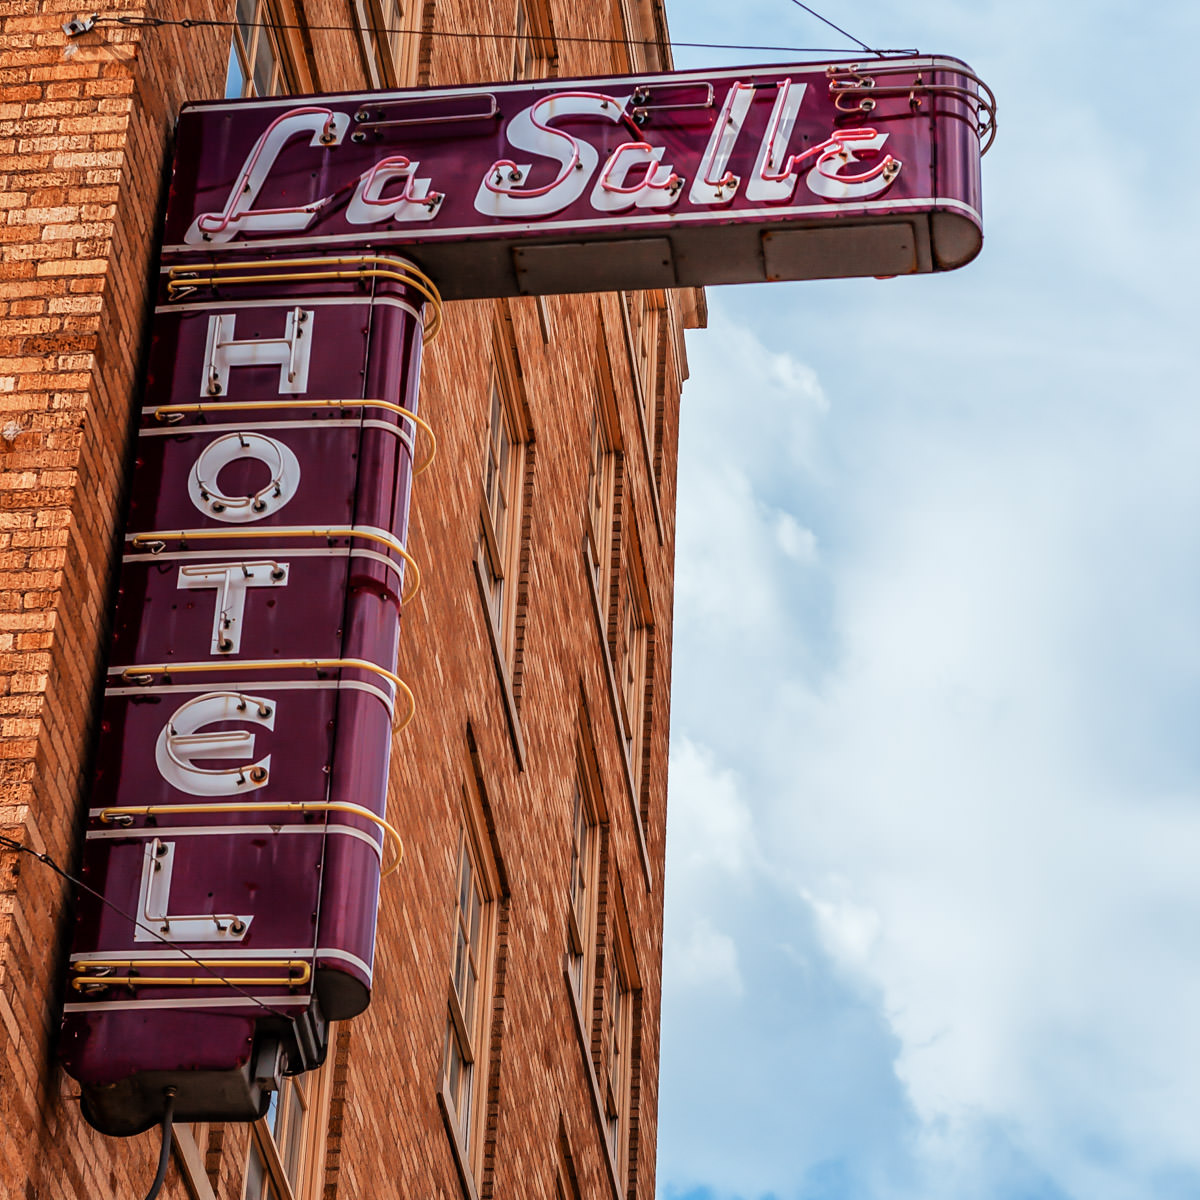 The sign of the La Salle Hotel in Downtown Bryan, Texas.